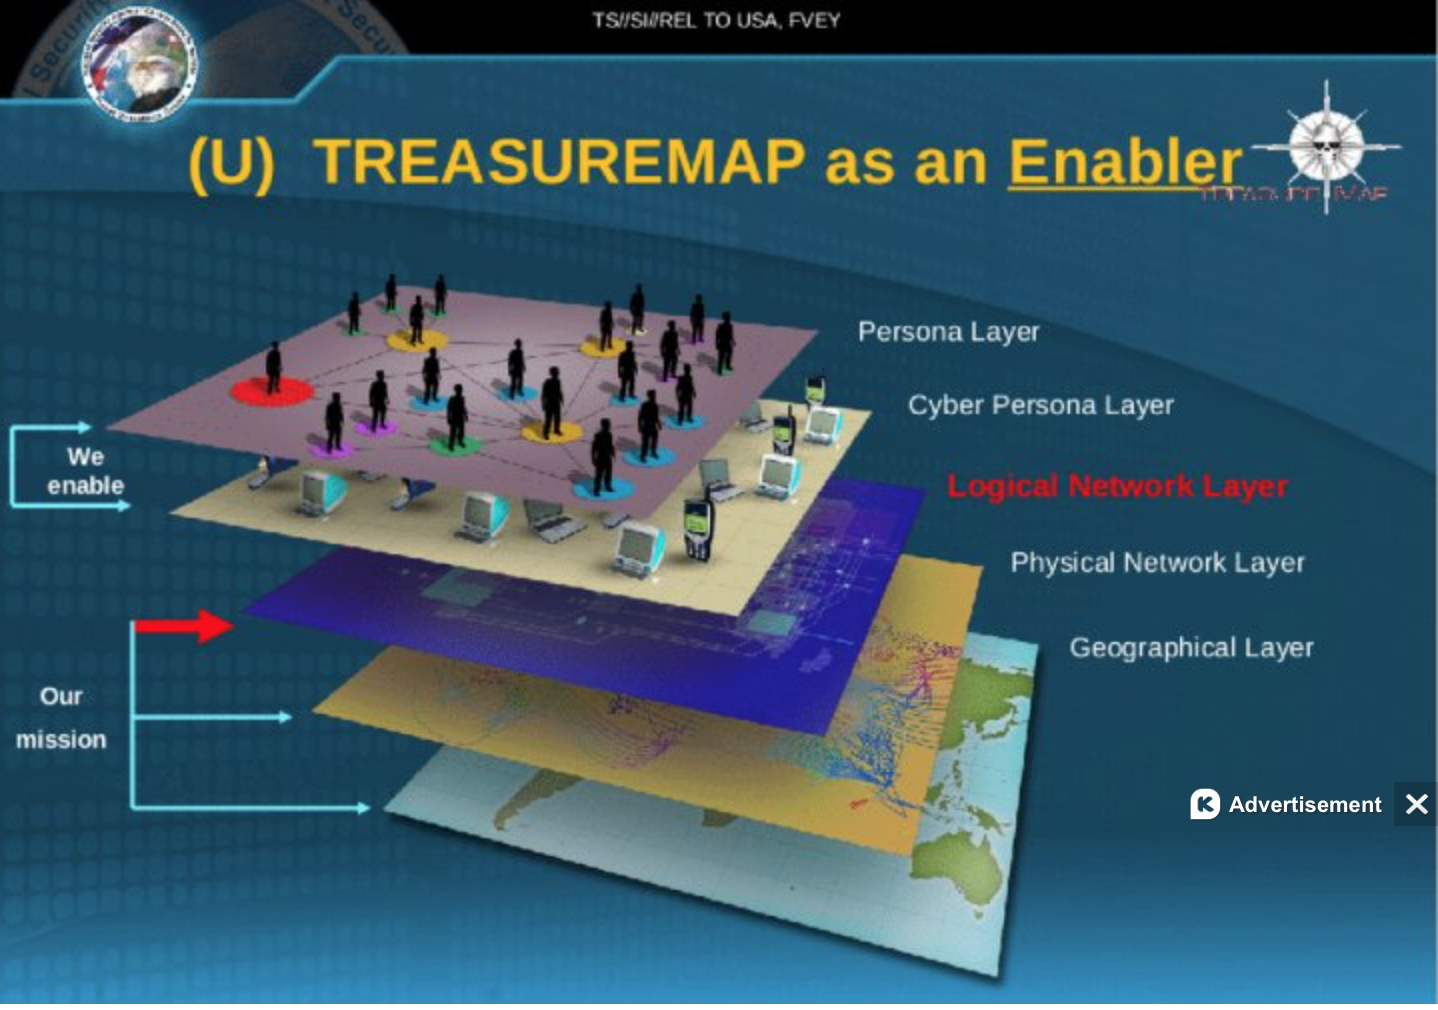 lsyers in Treasure Map